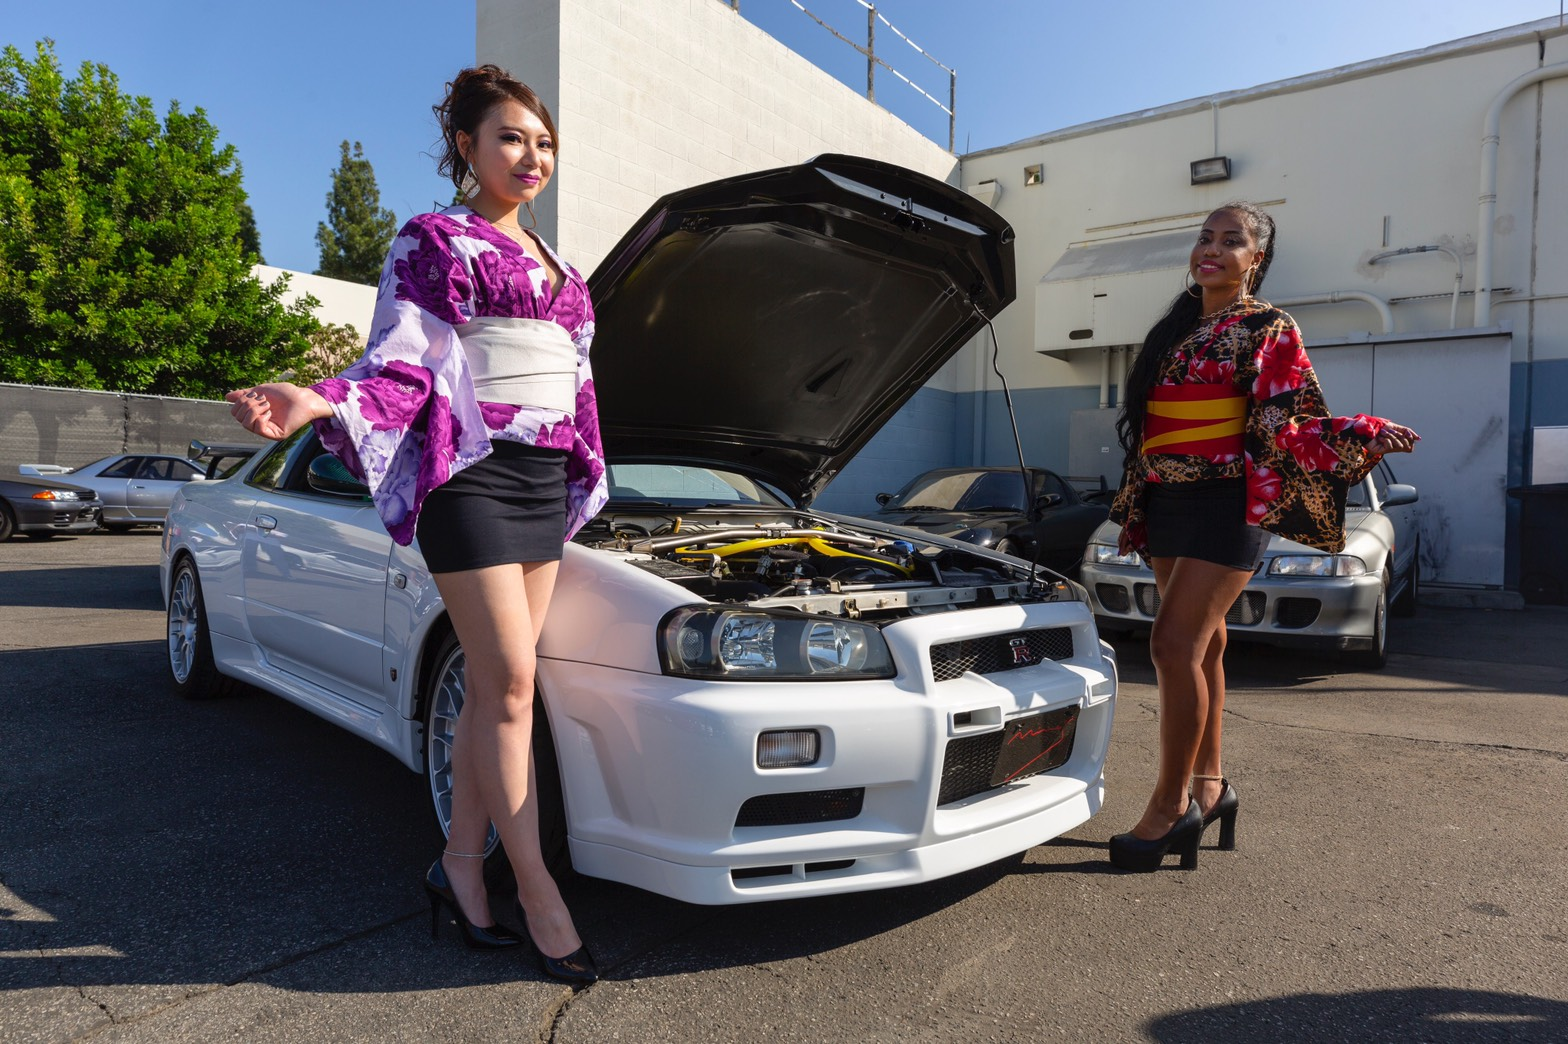 R34 N1 with Mines Parts